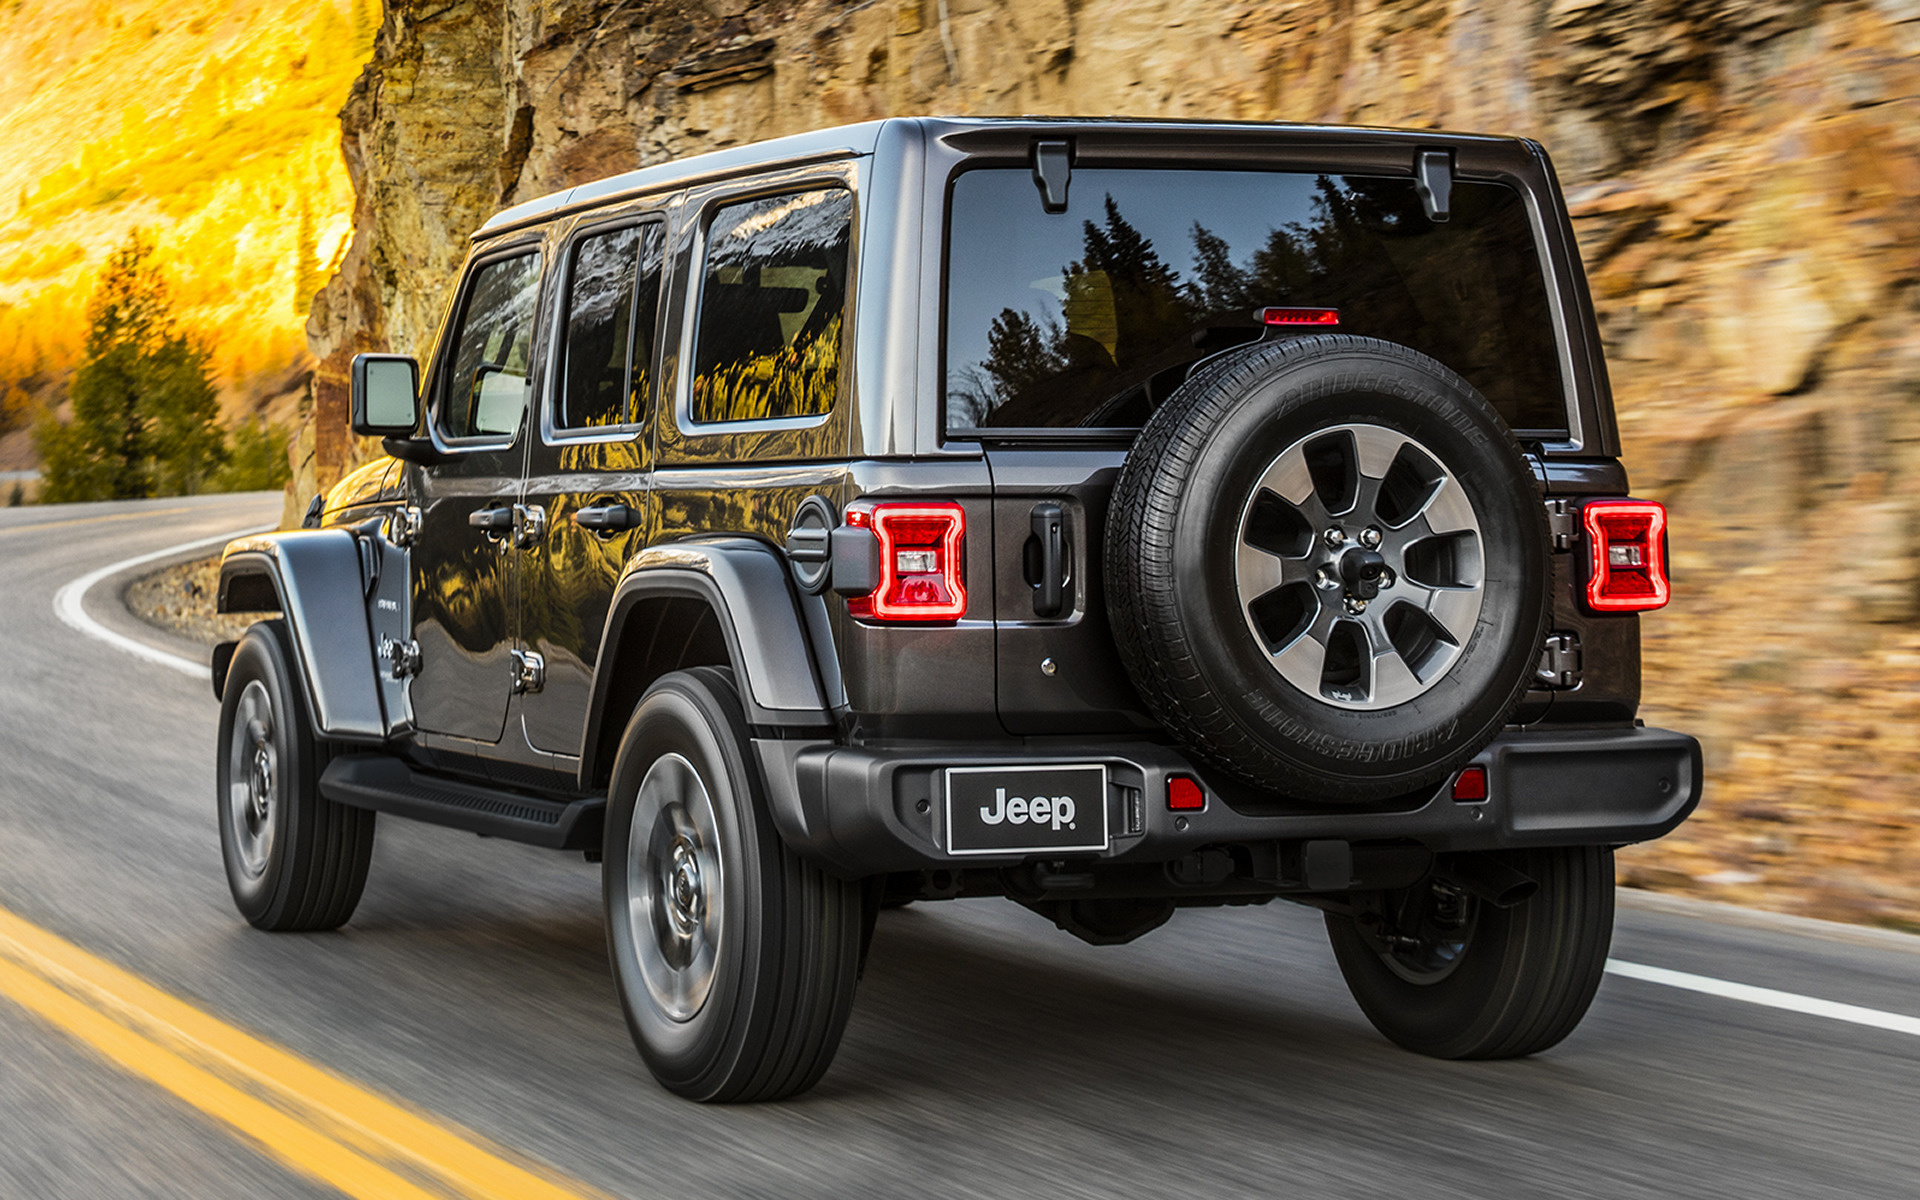 2018 Jeep Wrangler Unlimited Sahara Wallpapers And Hd